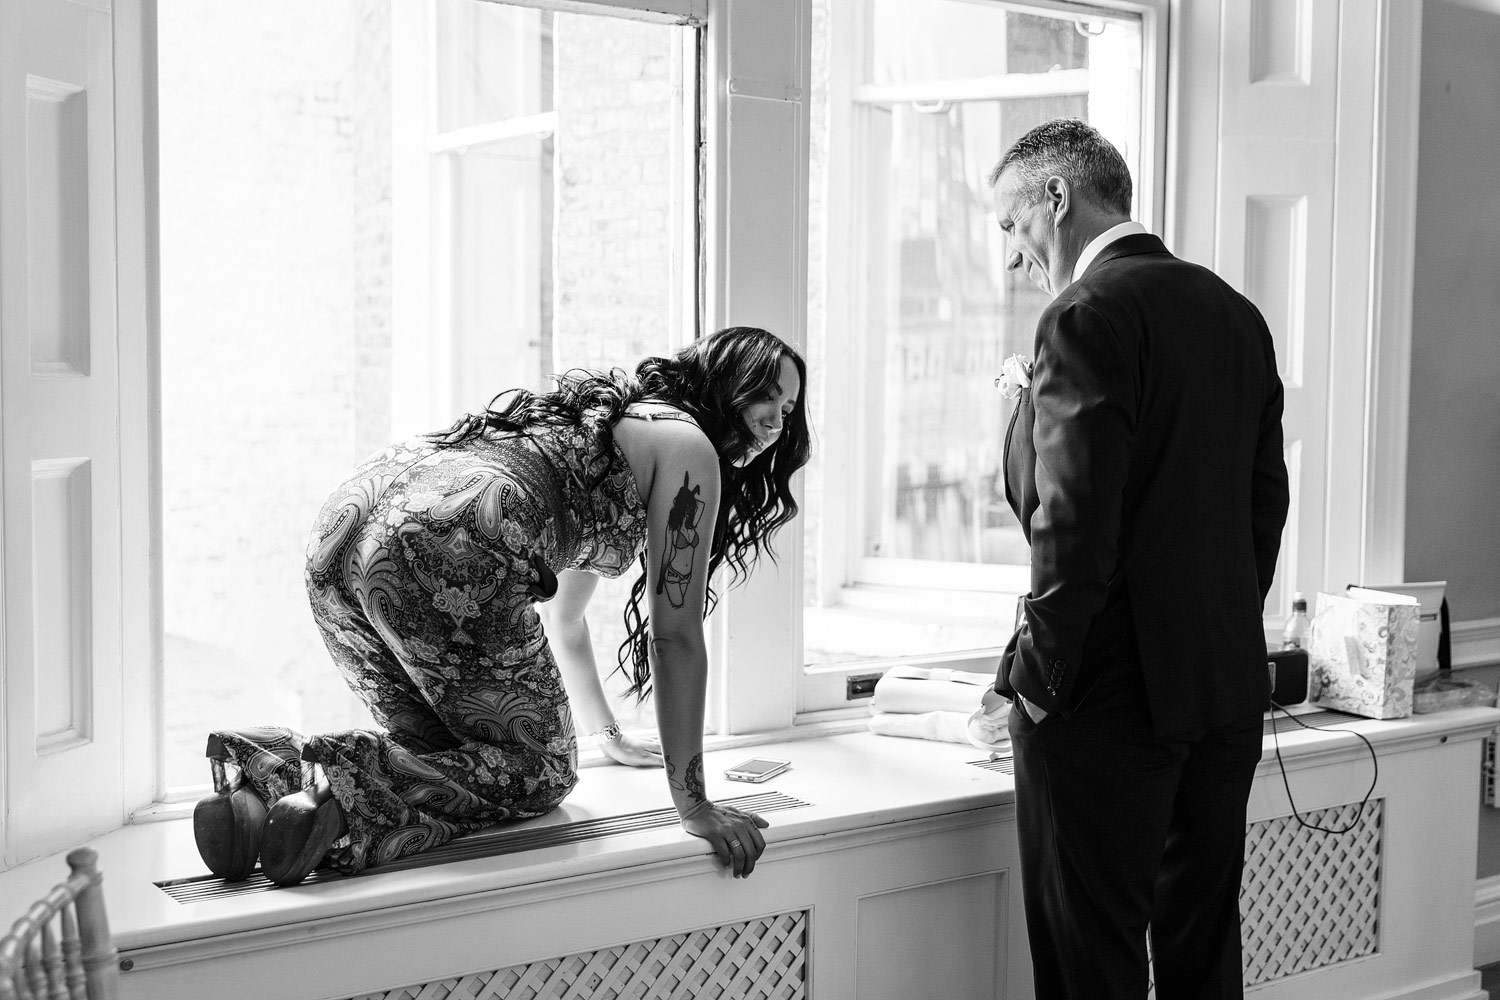 The bride's sister climbs onto a window sill at an Asia House wedding - London wedding photographer